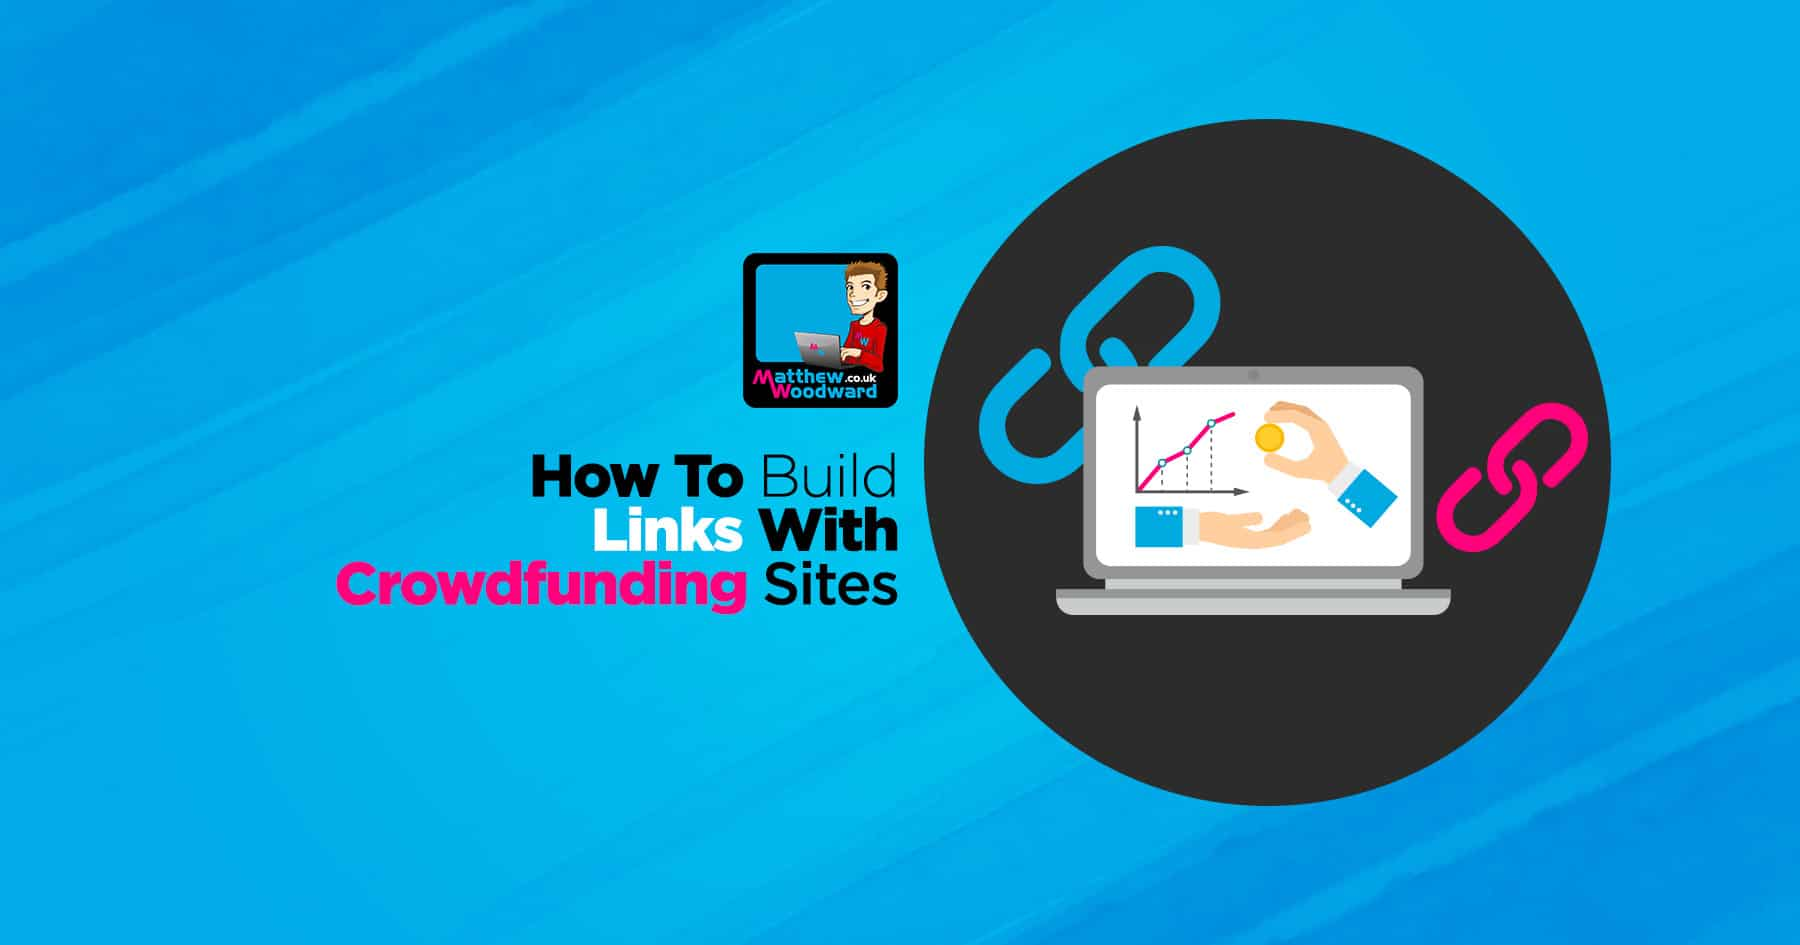 Crowdfunding Link Building: An Overlooked Strategy!